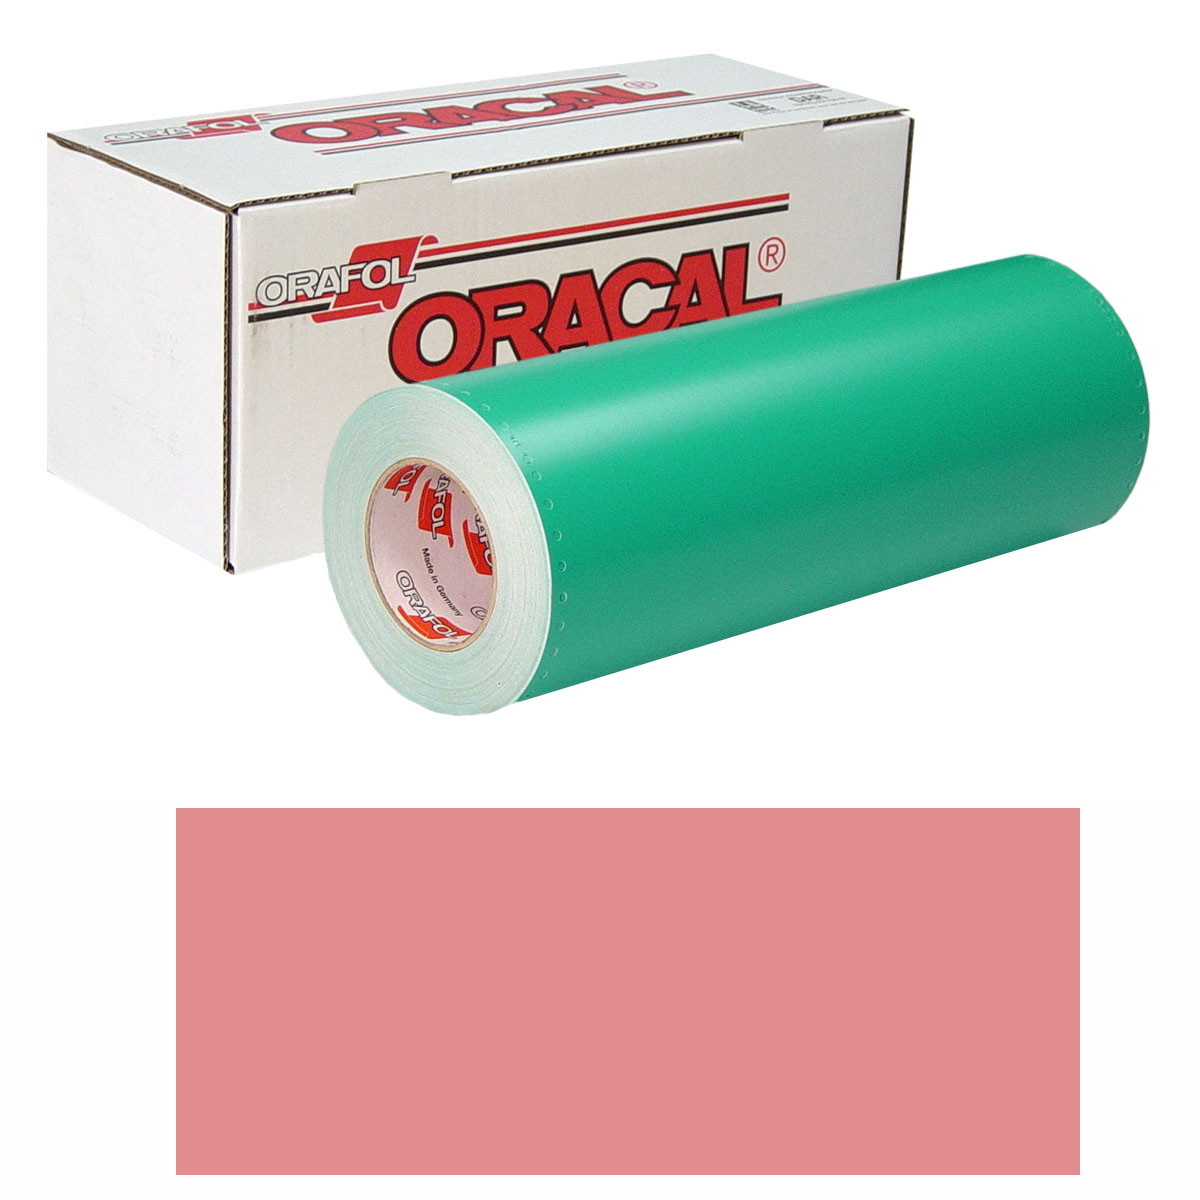 ORACAL 8500 Unp 24in X 50yd 085 Pale Pink